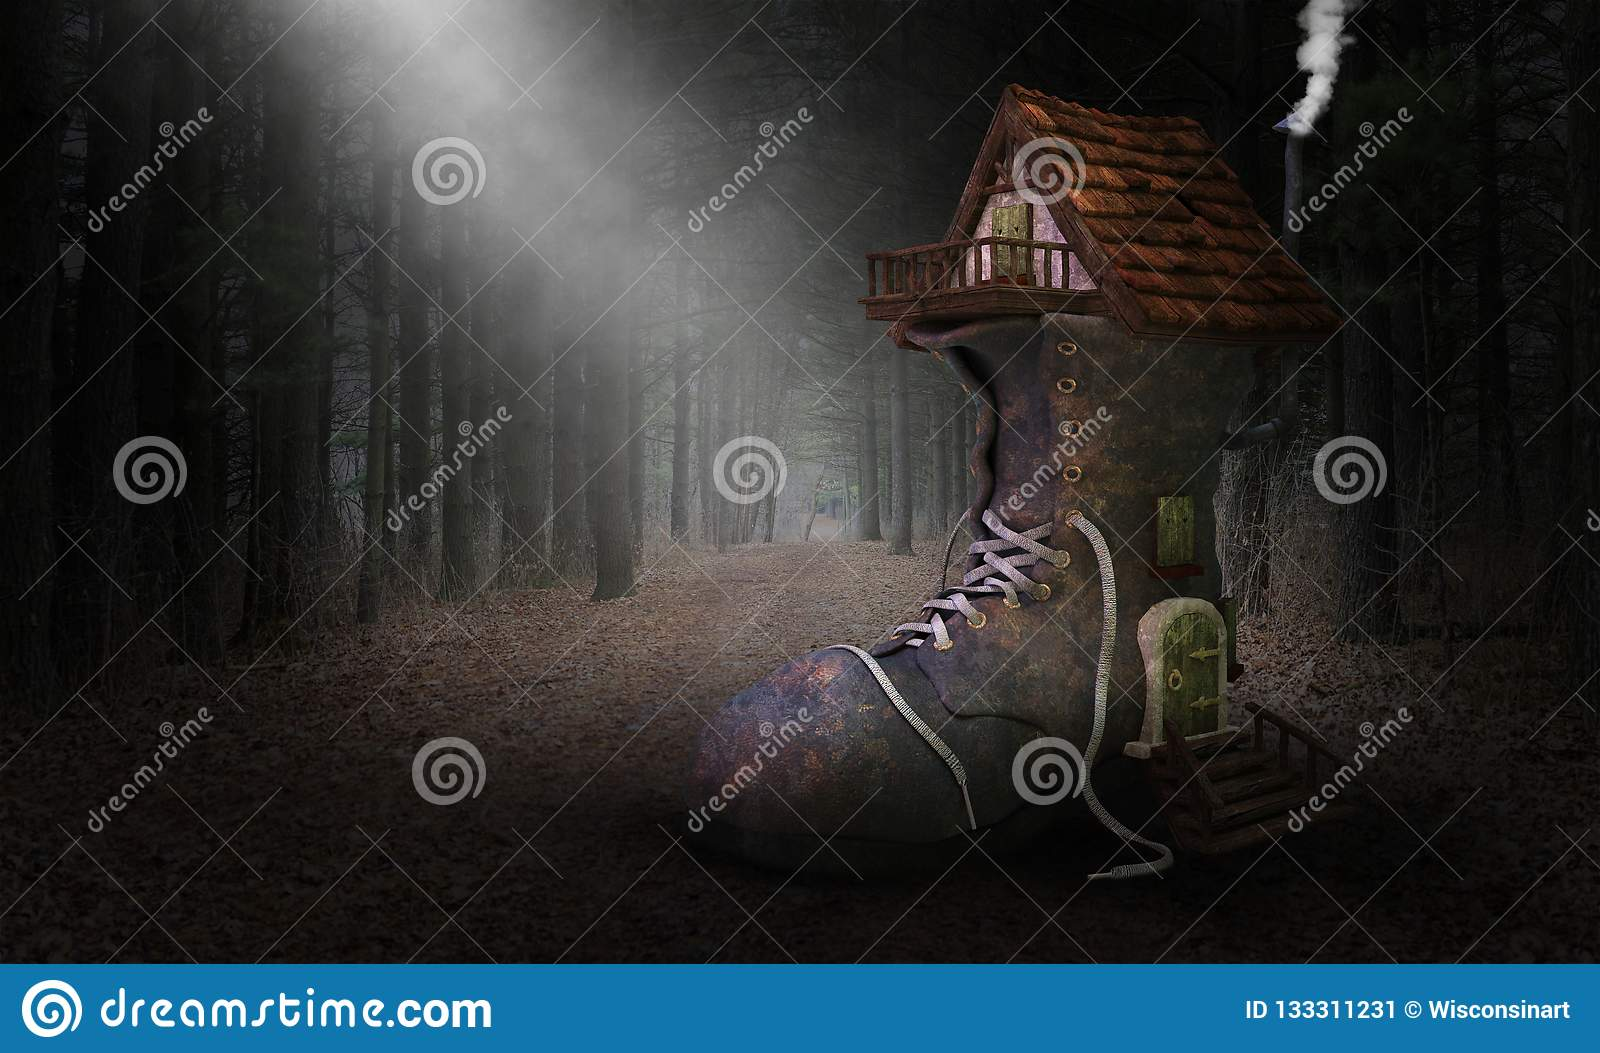 Storybook Fairytale Shoe House, Home, Forest, Woods